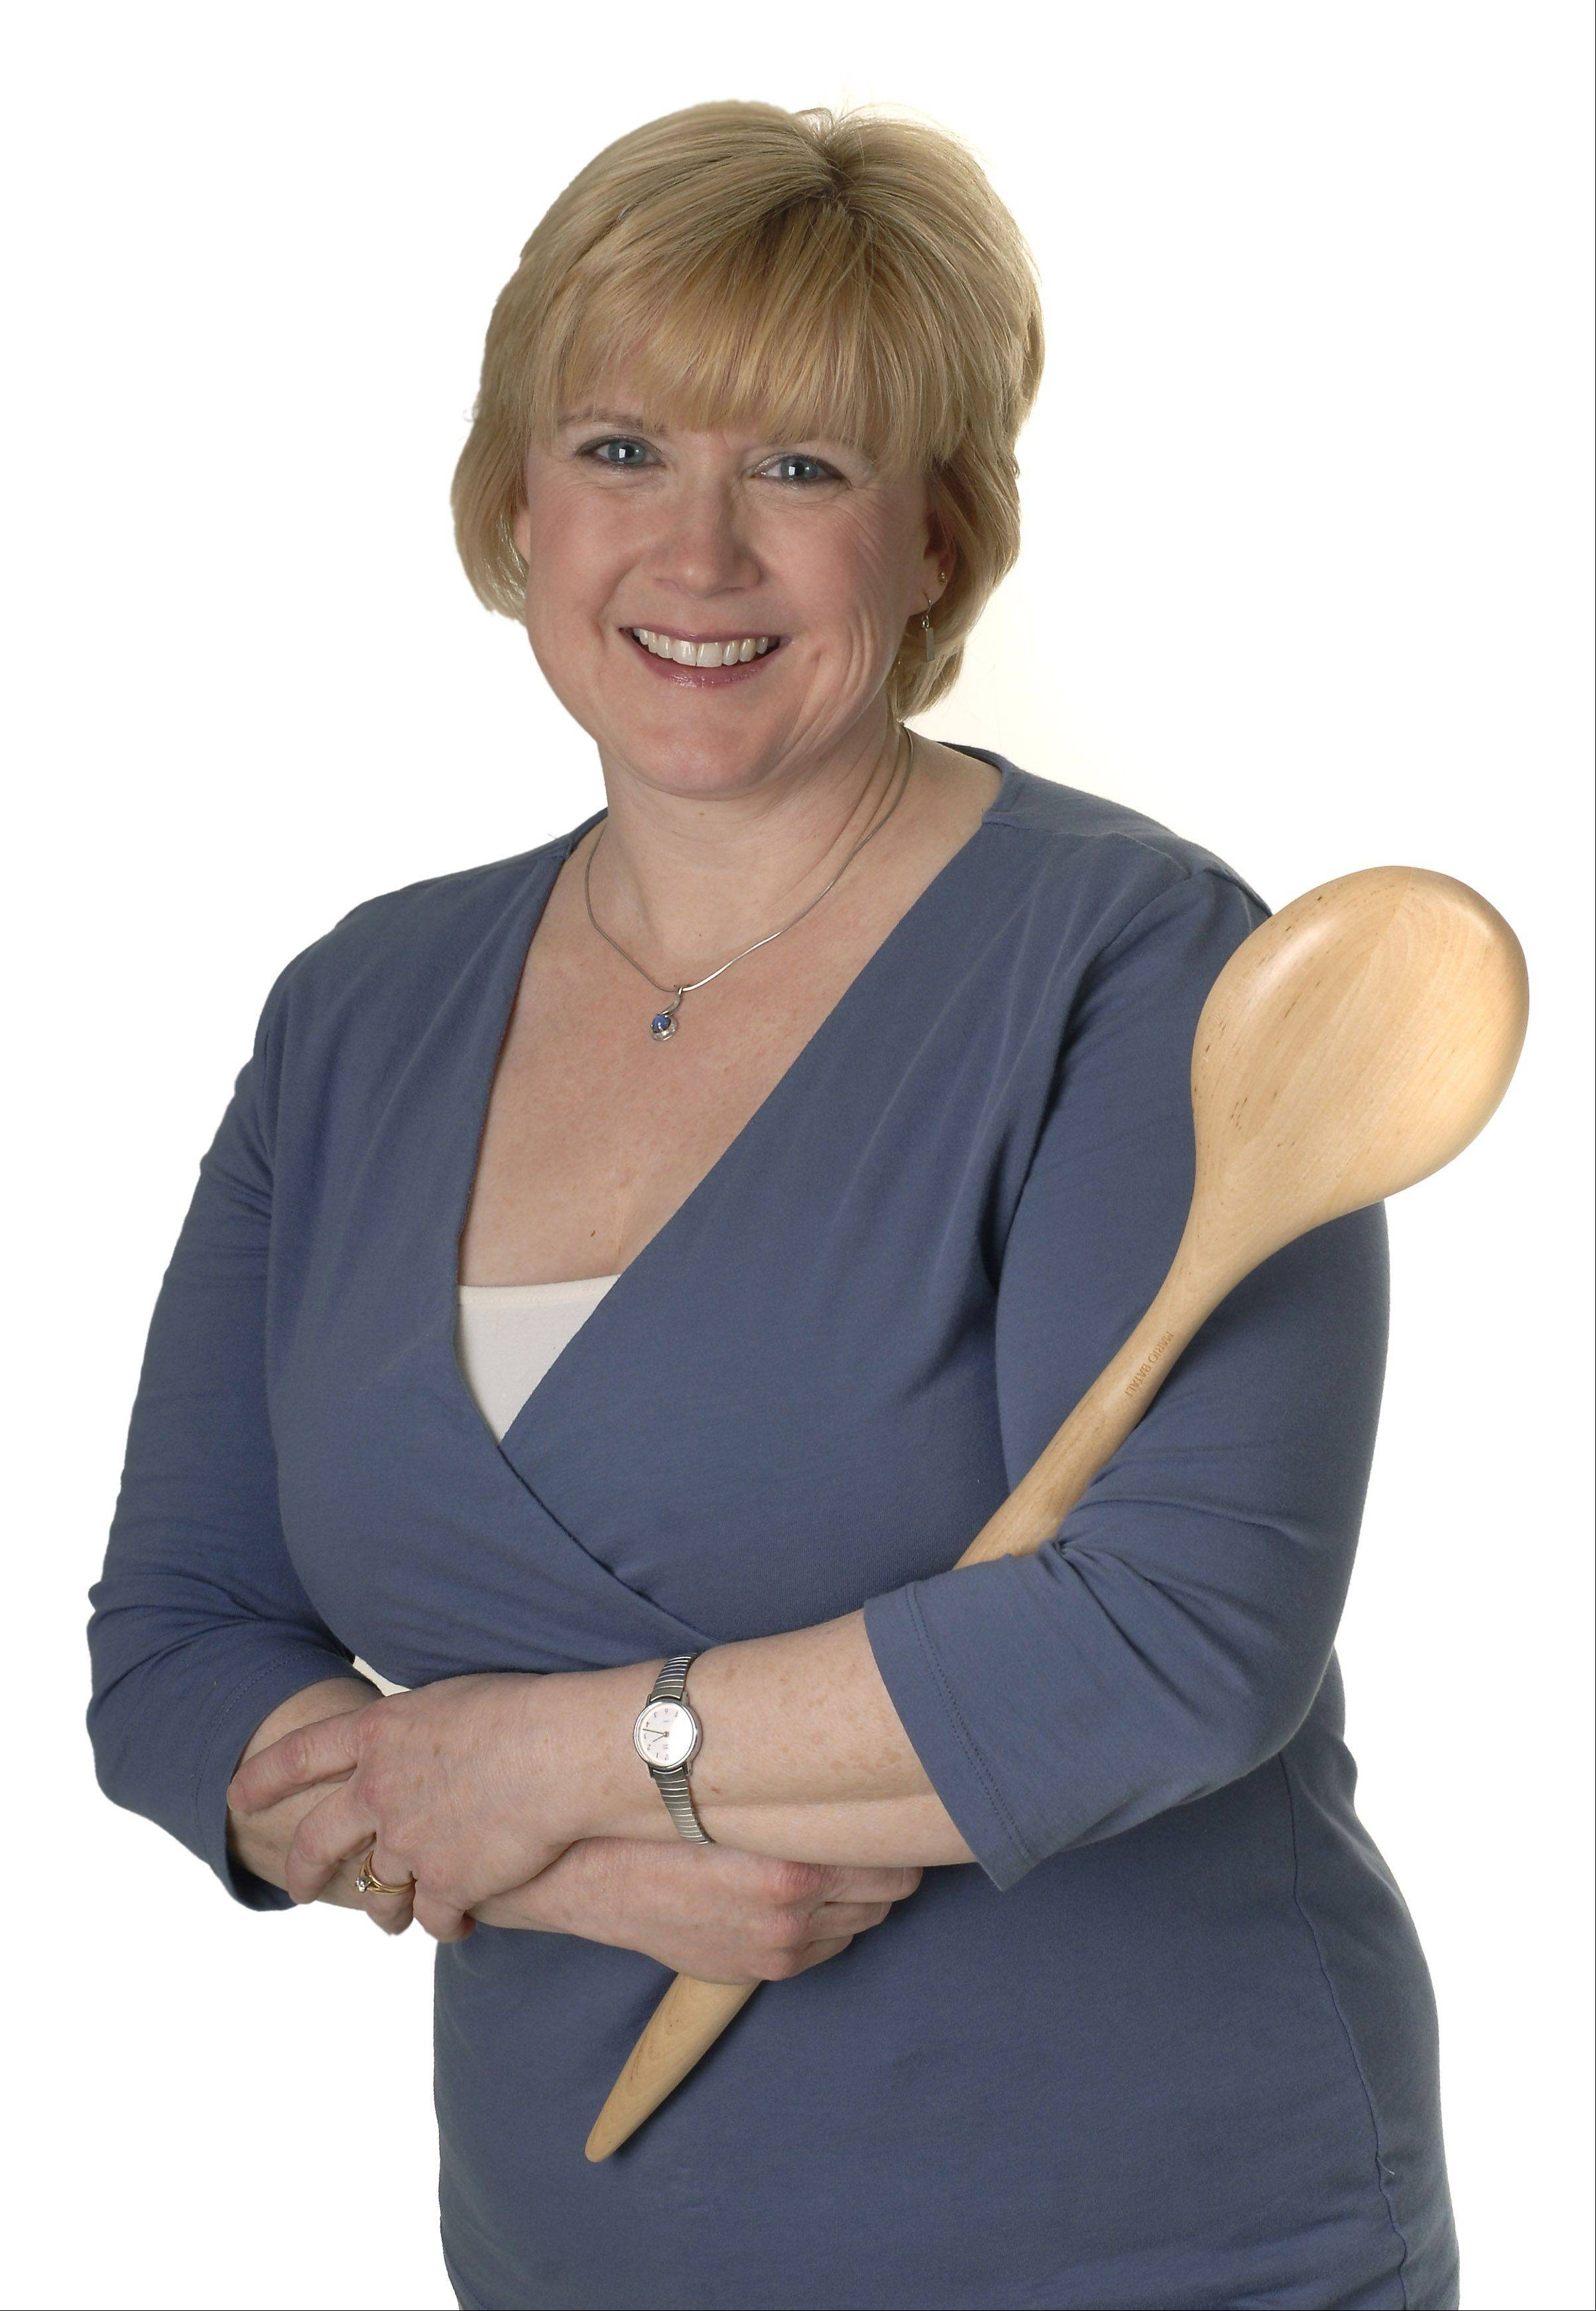 Daily Herald Food Editor Deborah Pankey, shown with a wooden spoon signed by celebrity chef Mario Batali, was a driving force behind the inaugural Cook of the Week Challenge.